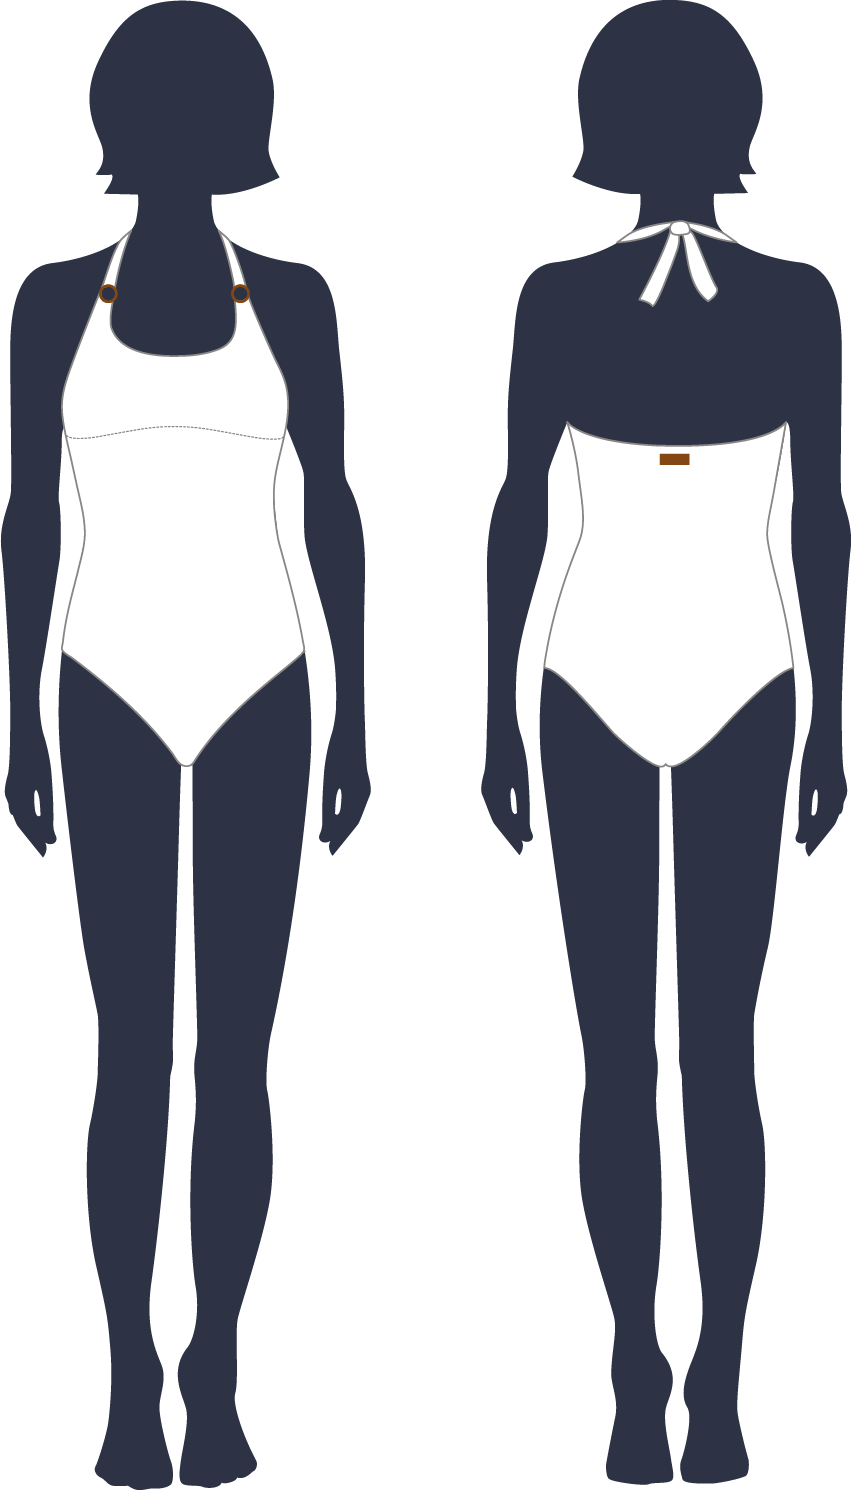 Classic one-piece swimsuit to tie at the neck for women